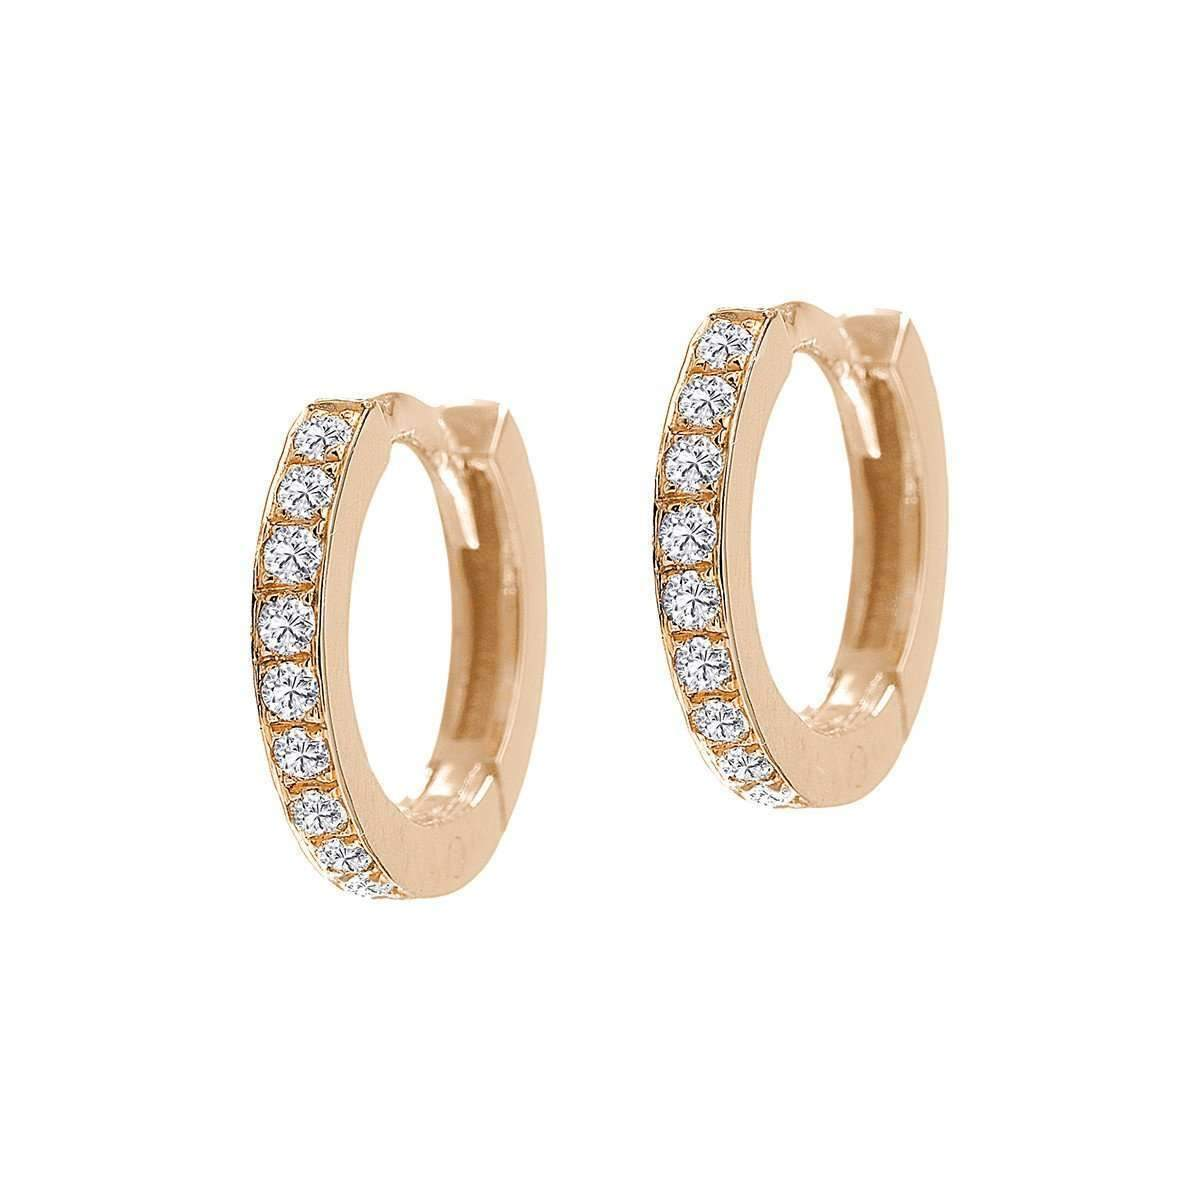 Mini Millennium Huggie Single-Earrings-Jezebel London-JewelStreet